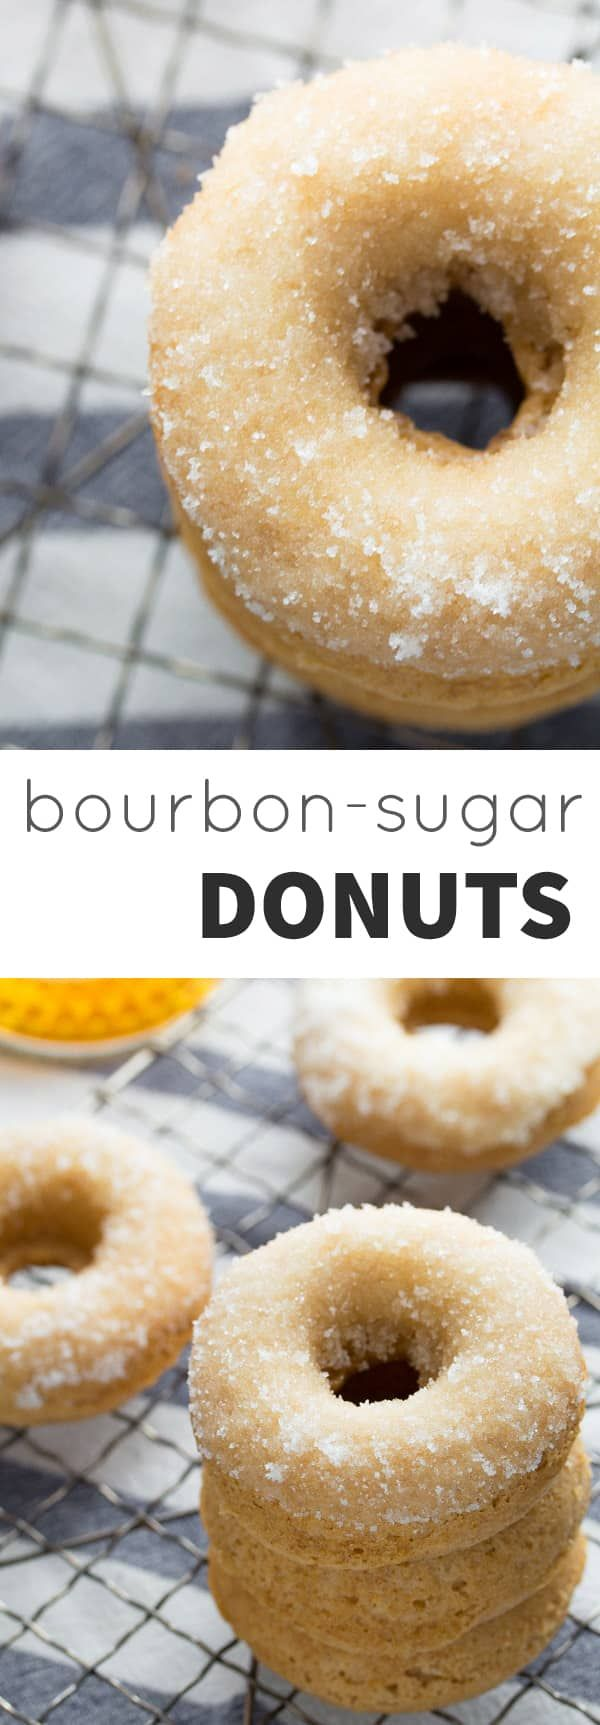 Bourbon-Sugared French Toast Donuts @sweetpeasaffron